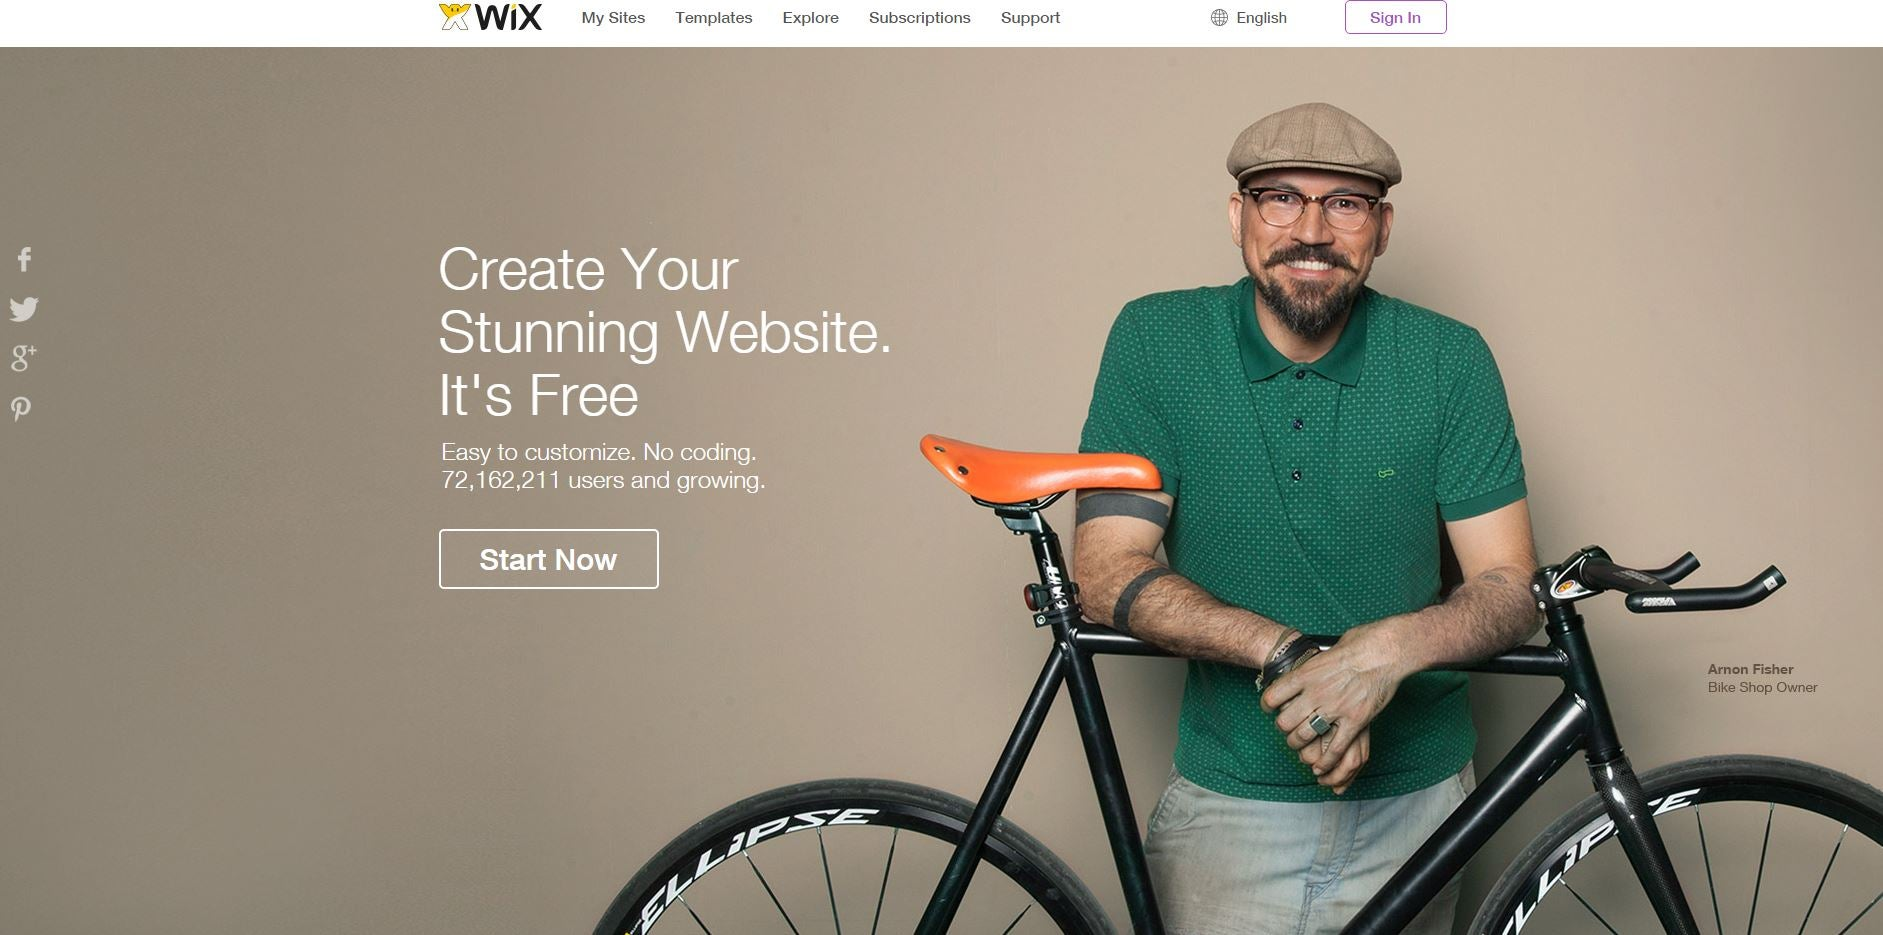 7 Best Free Website Builders   Wix